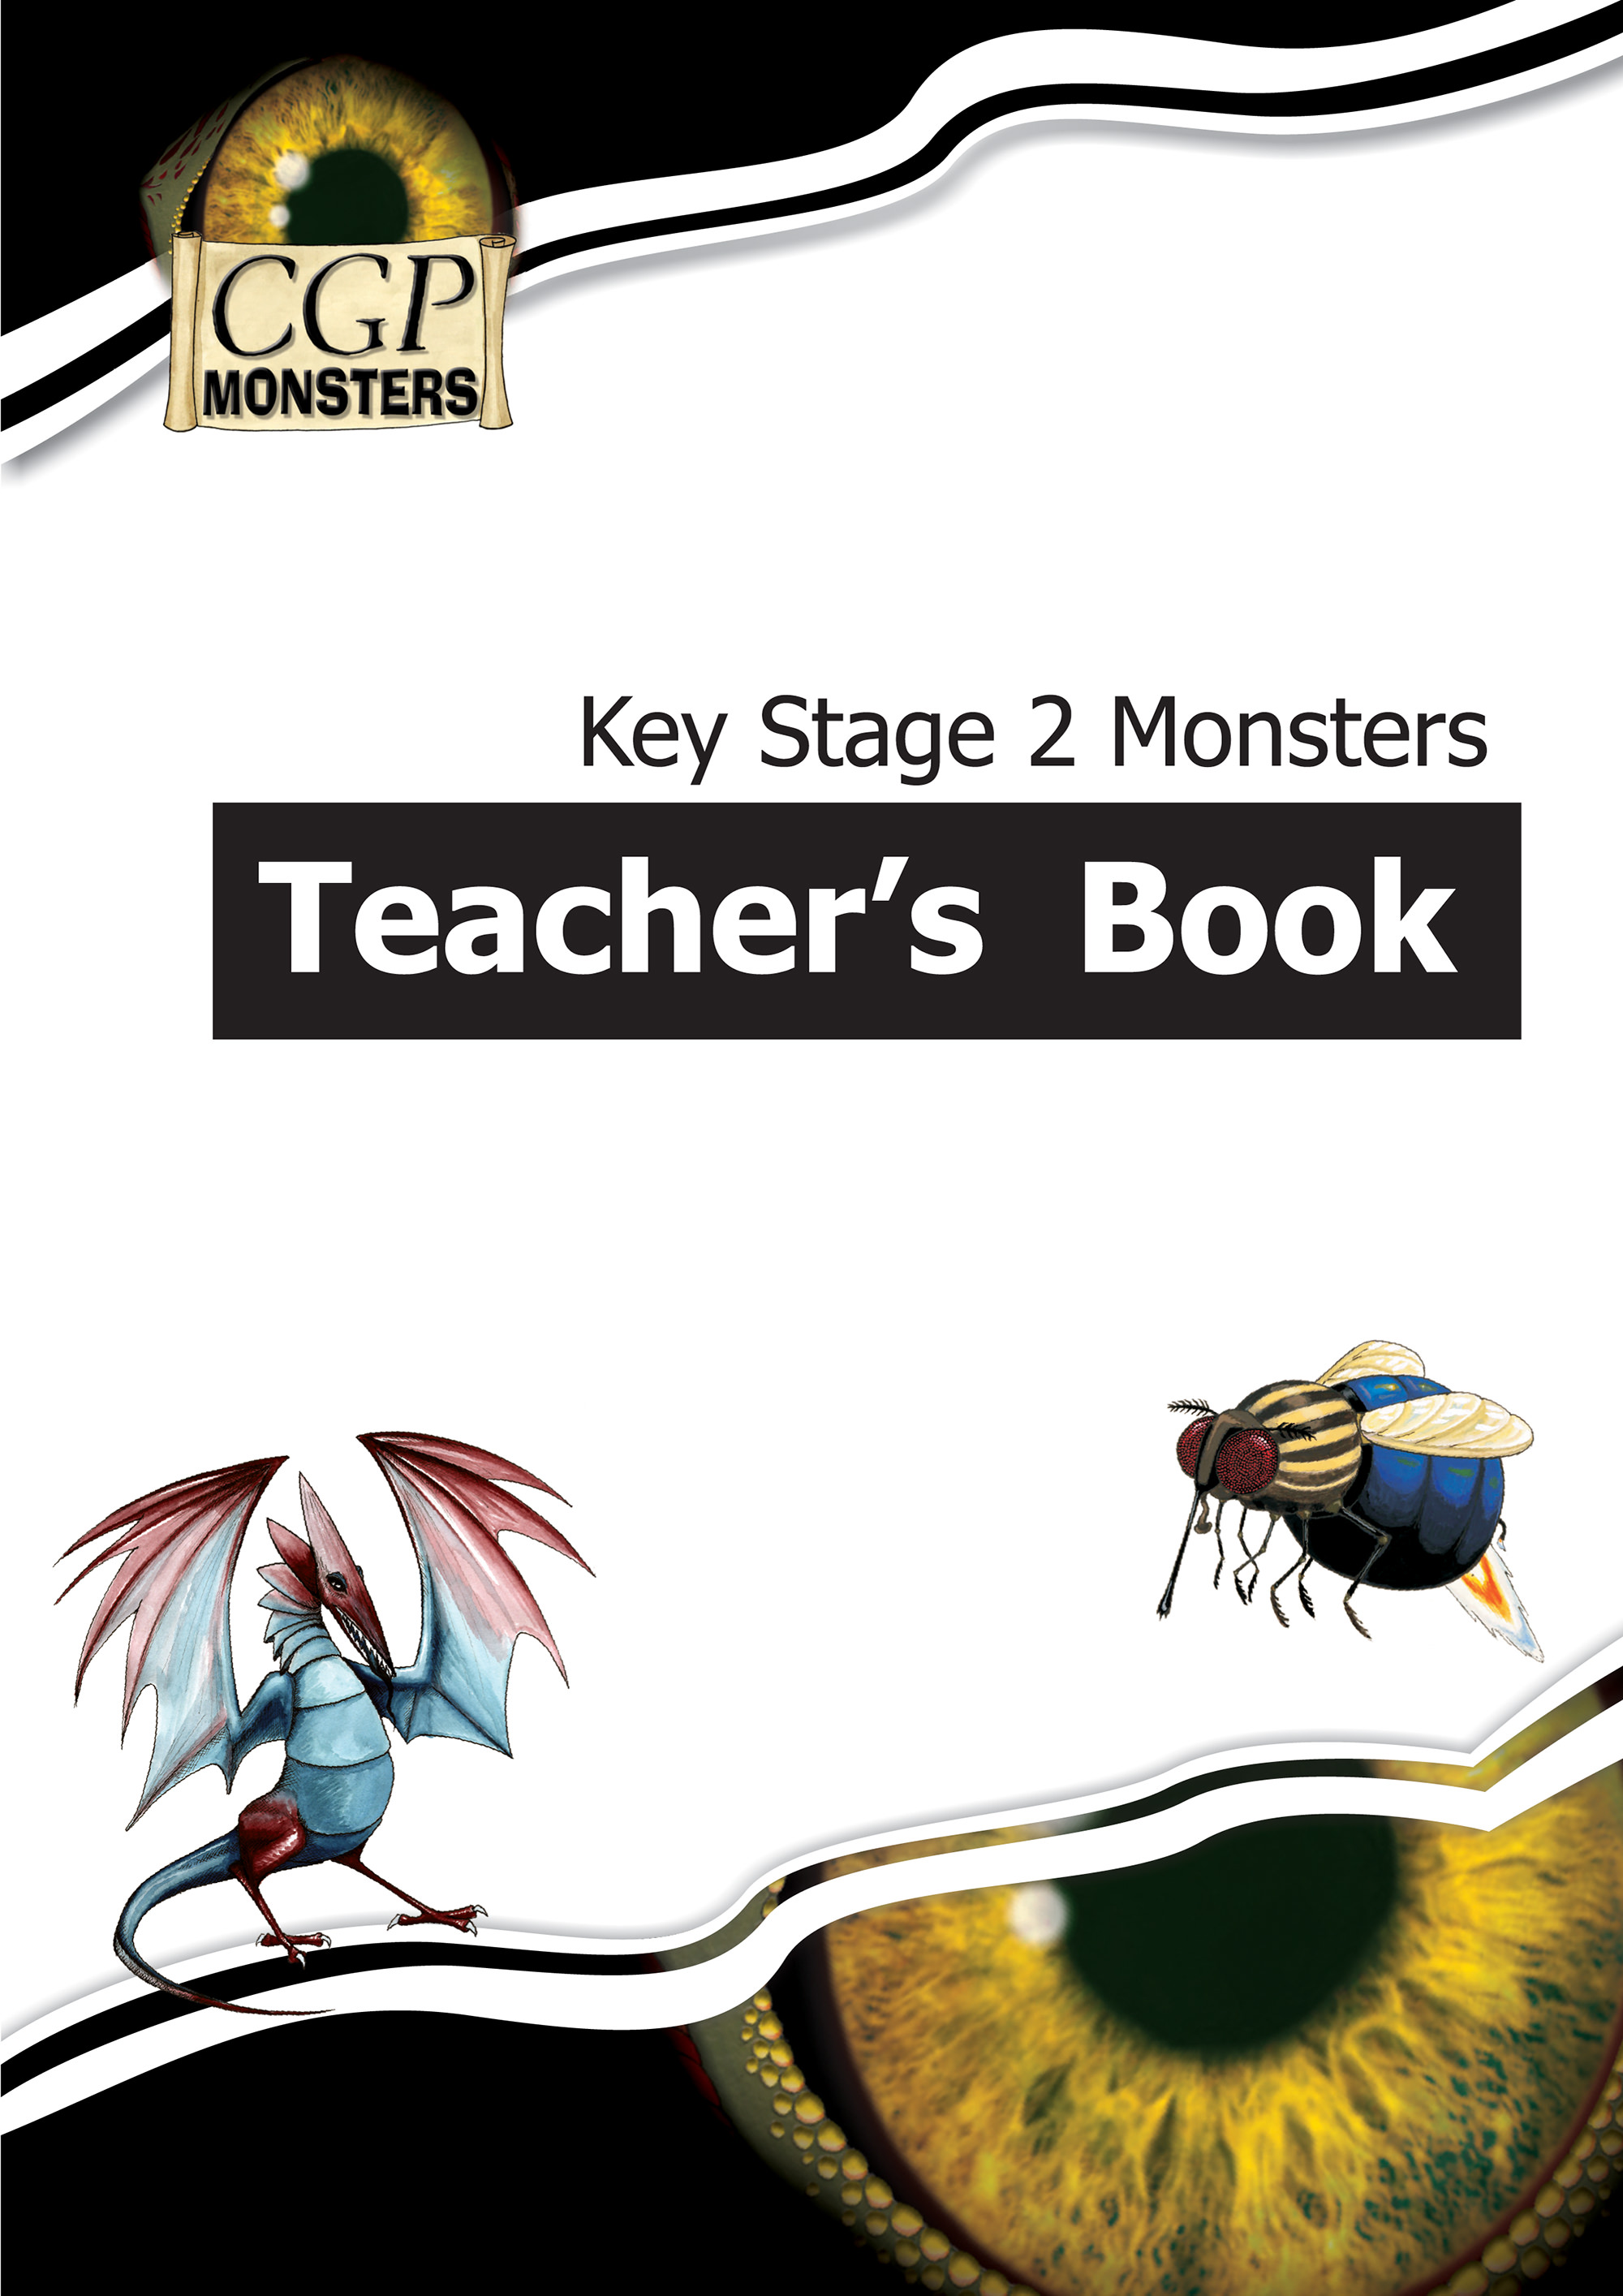 RTBM21 - KS2 Monsters Teachers Book